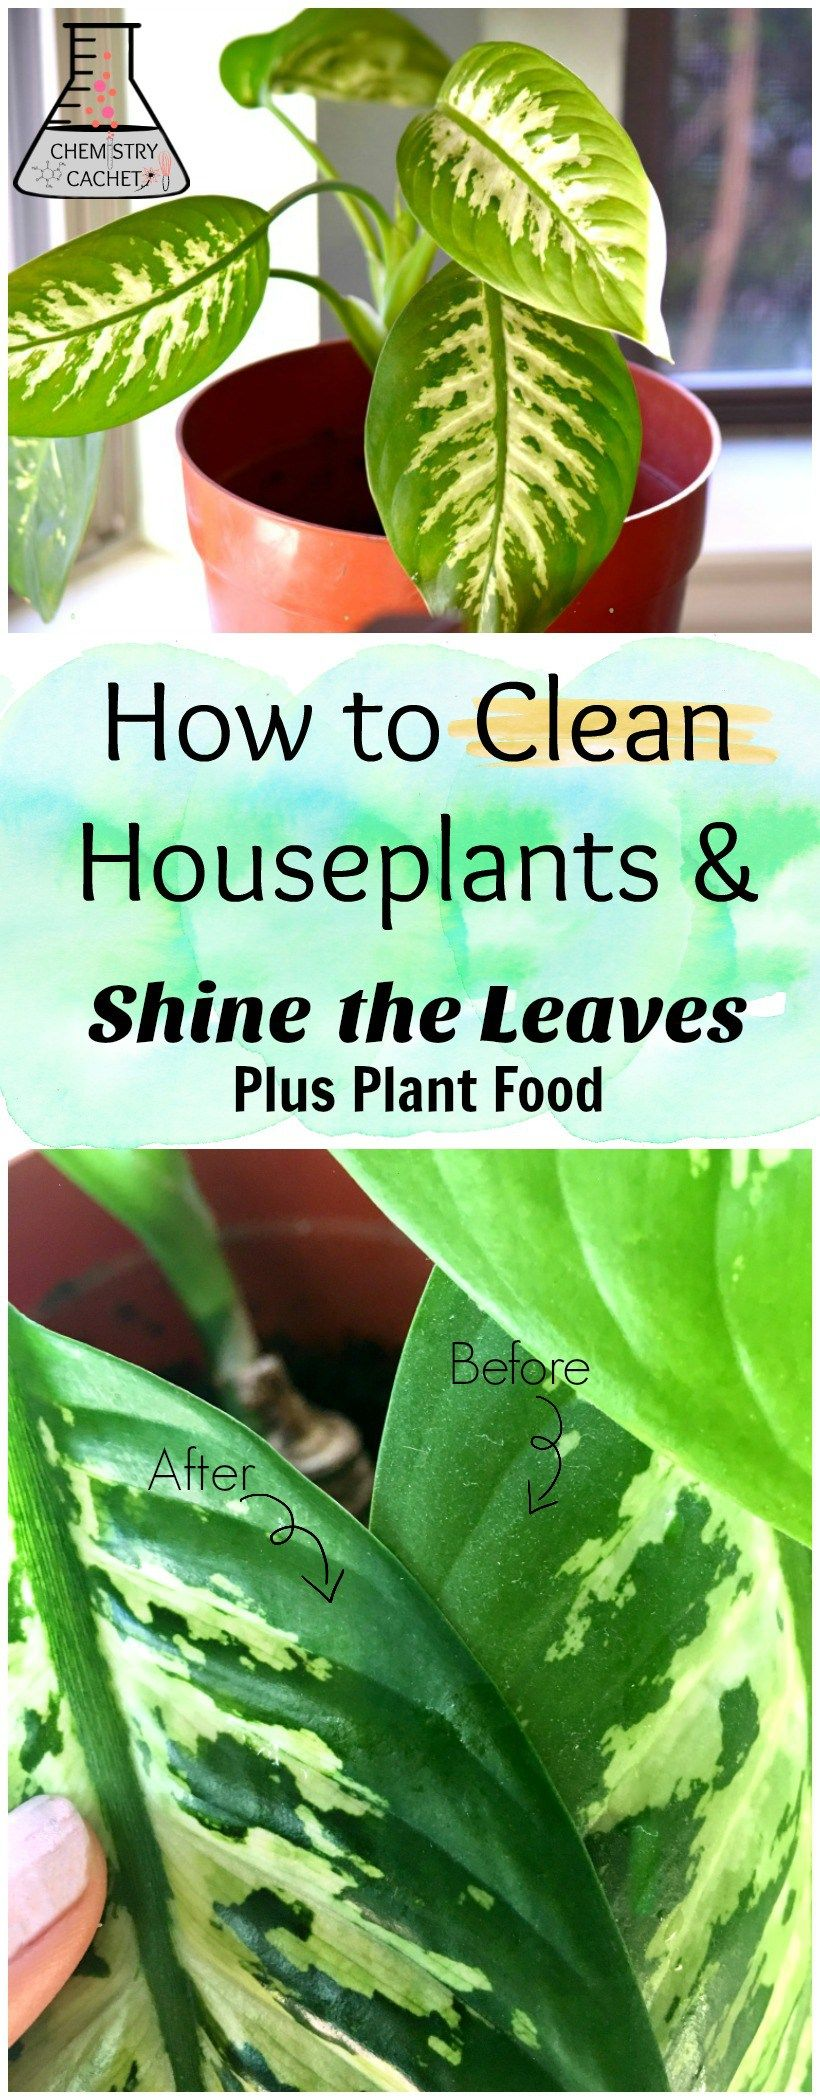 how to clean indoor houseplants and shine the leaves plus plant food tips